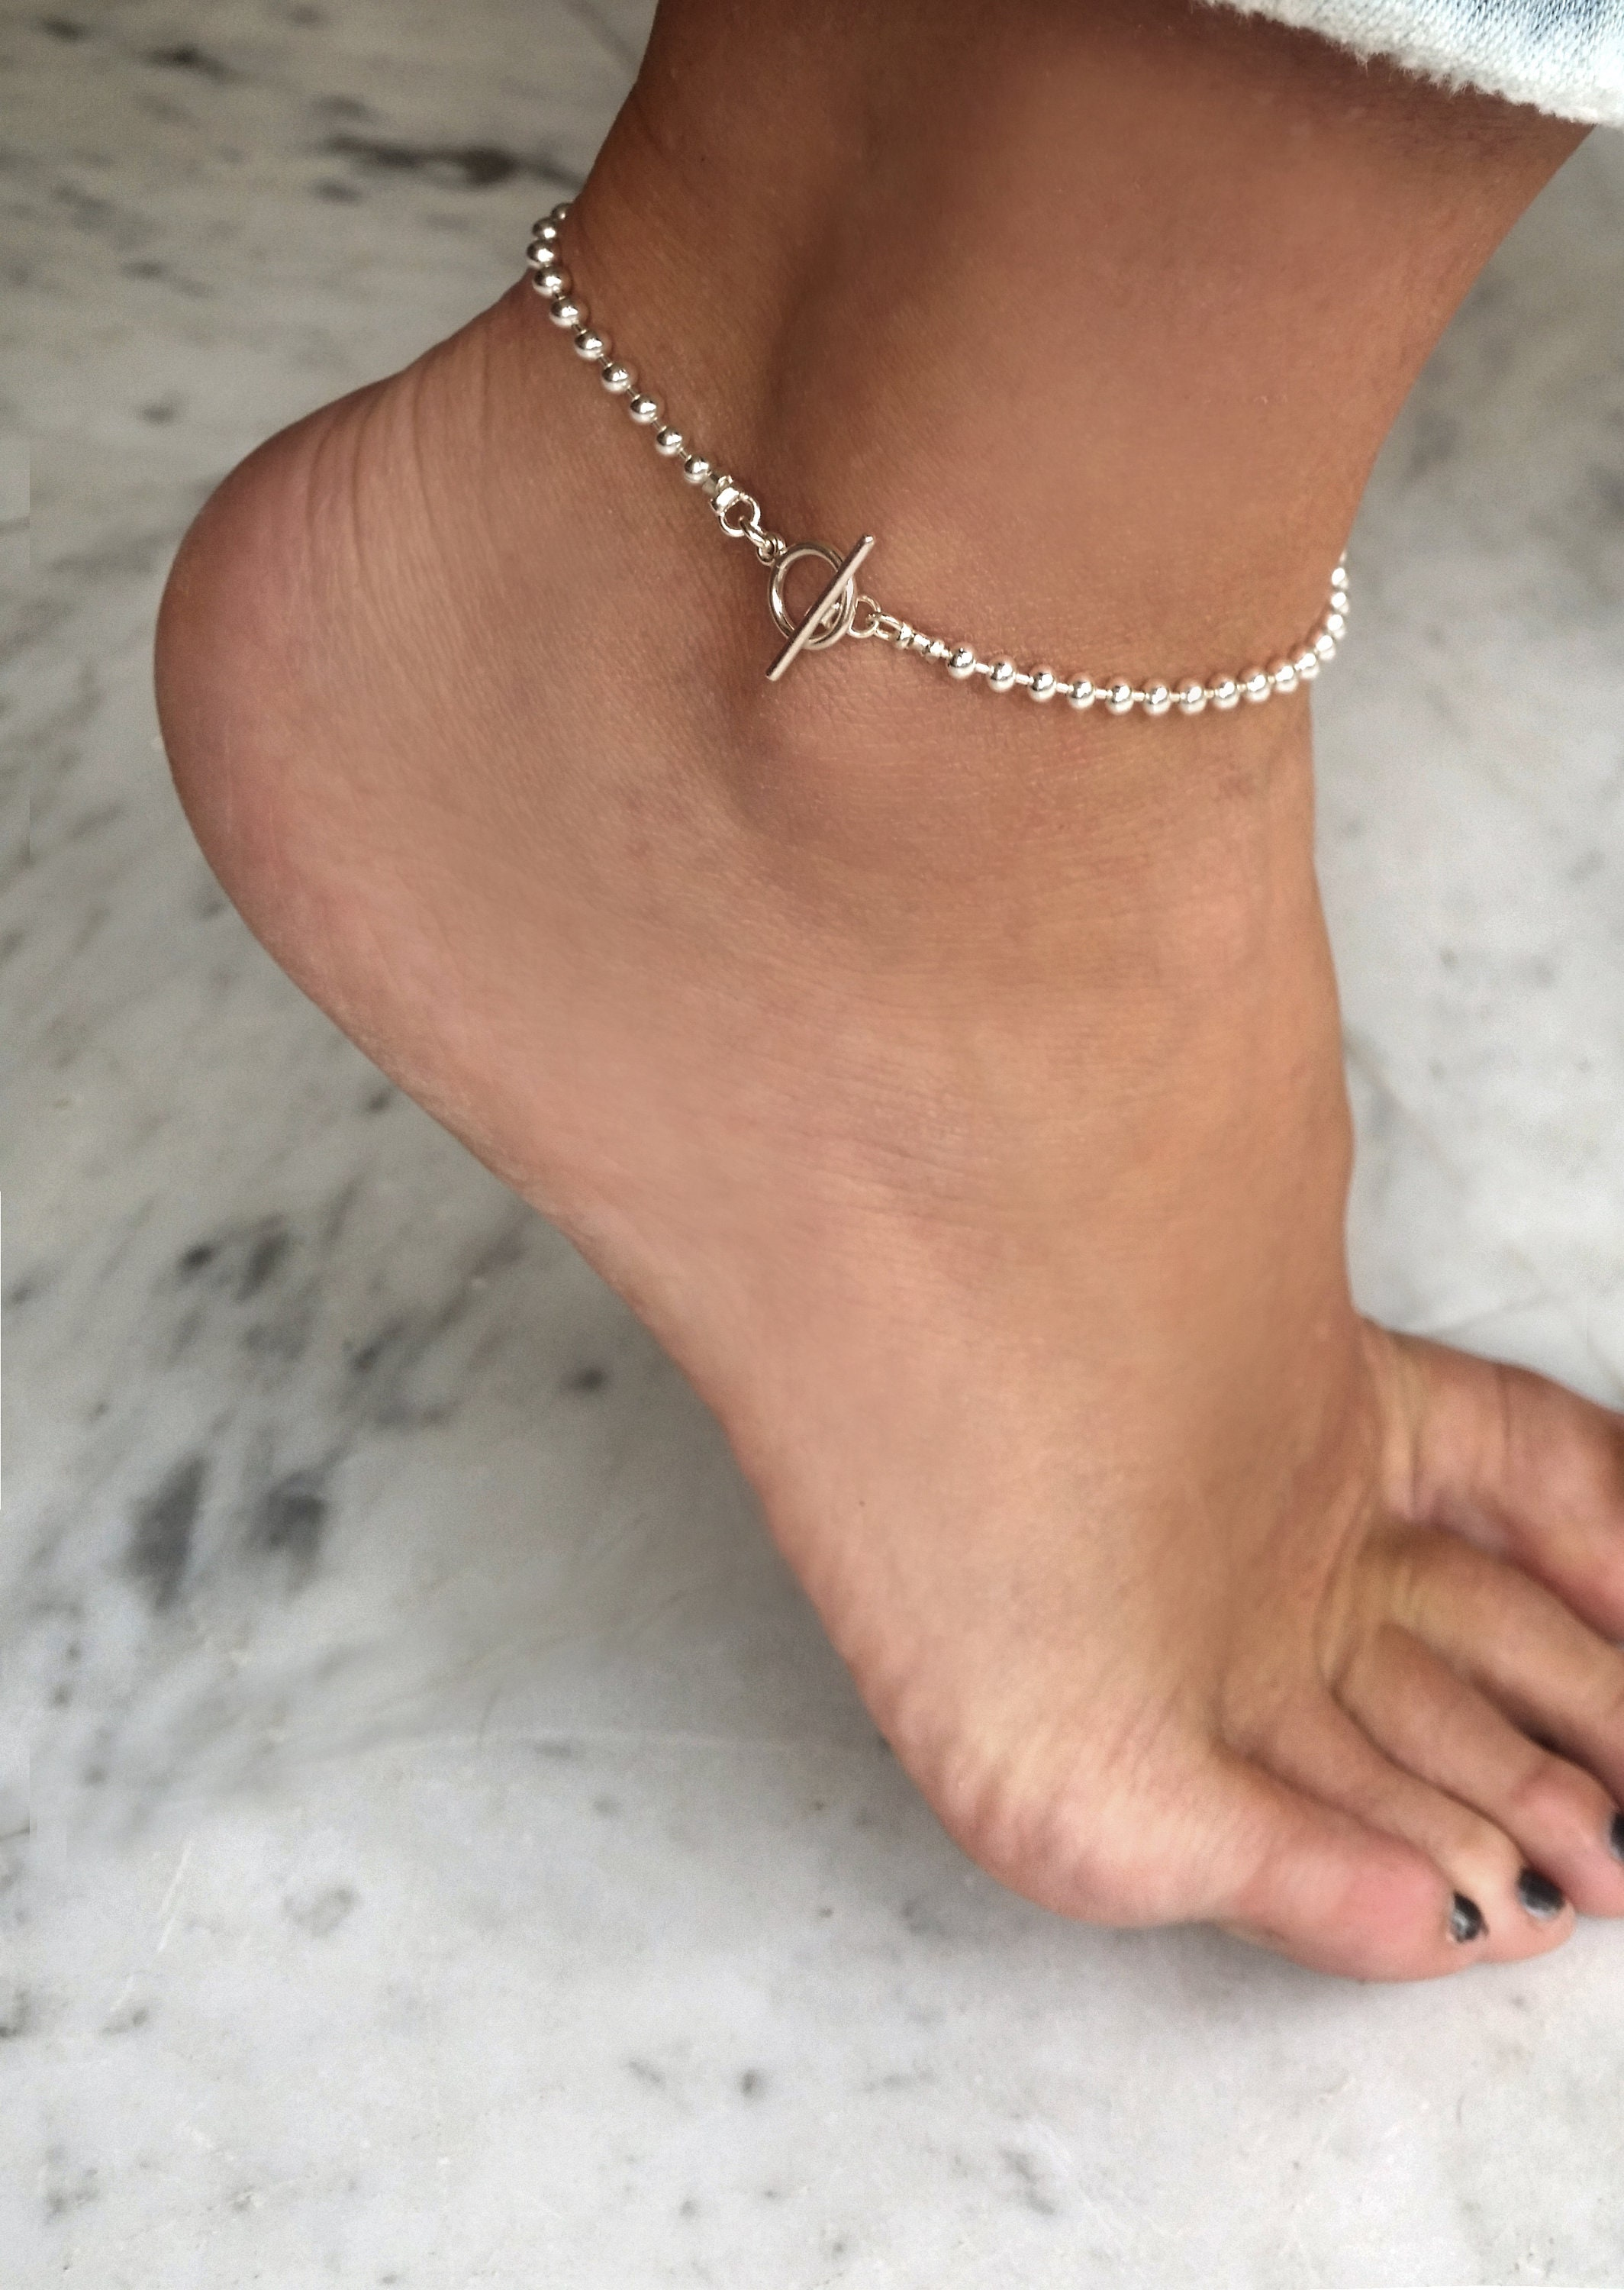 p swarovski simple silver bracelet ankle sterling personalized birthstone bridal heart chain anklet bracelets fullxfull il